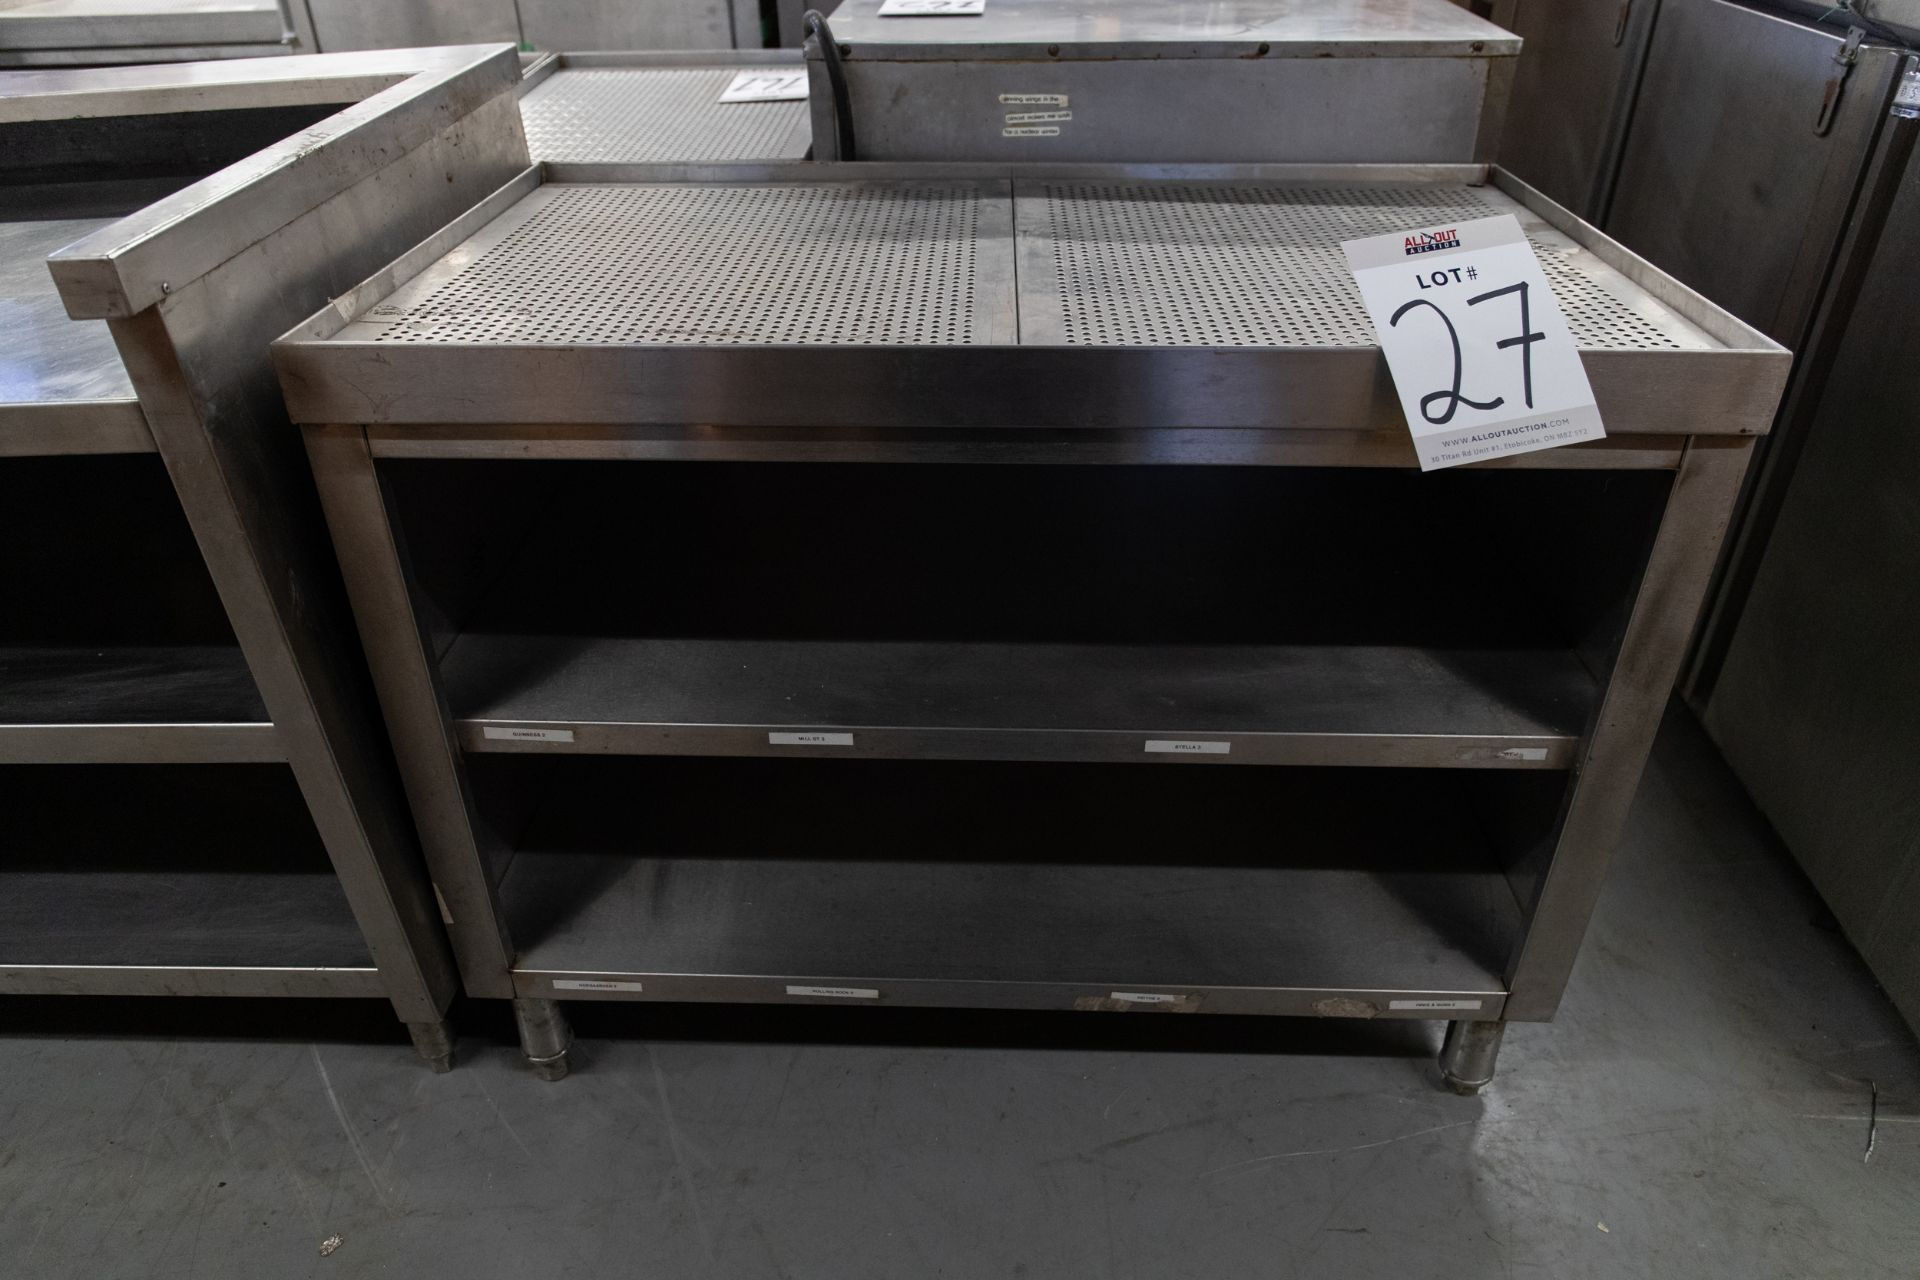 "S.S COUNTER WITH DRAINAGE AND 2 SHELVES - H-31.5"" D- 23.5"" L-40.5"" - Image 3 of 3"